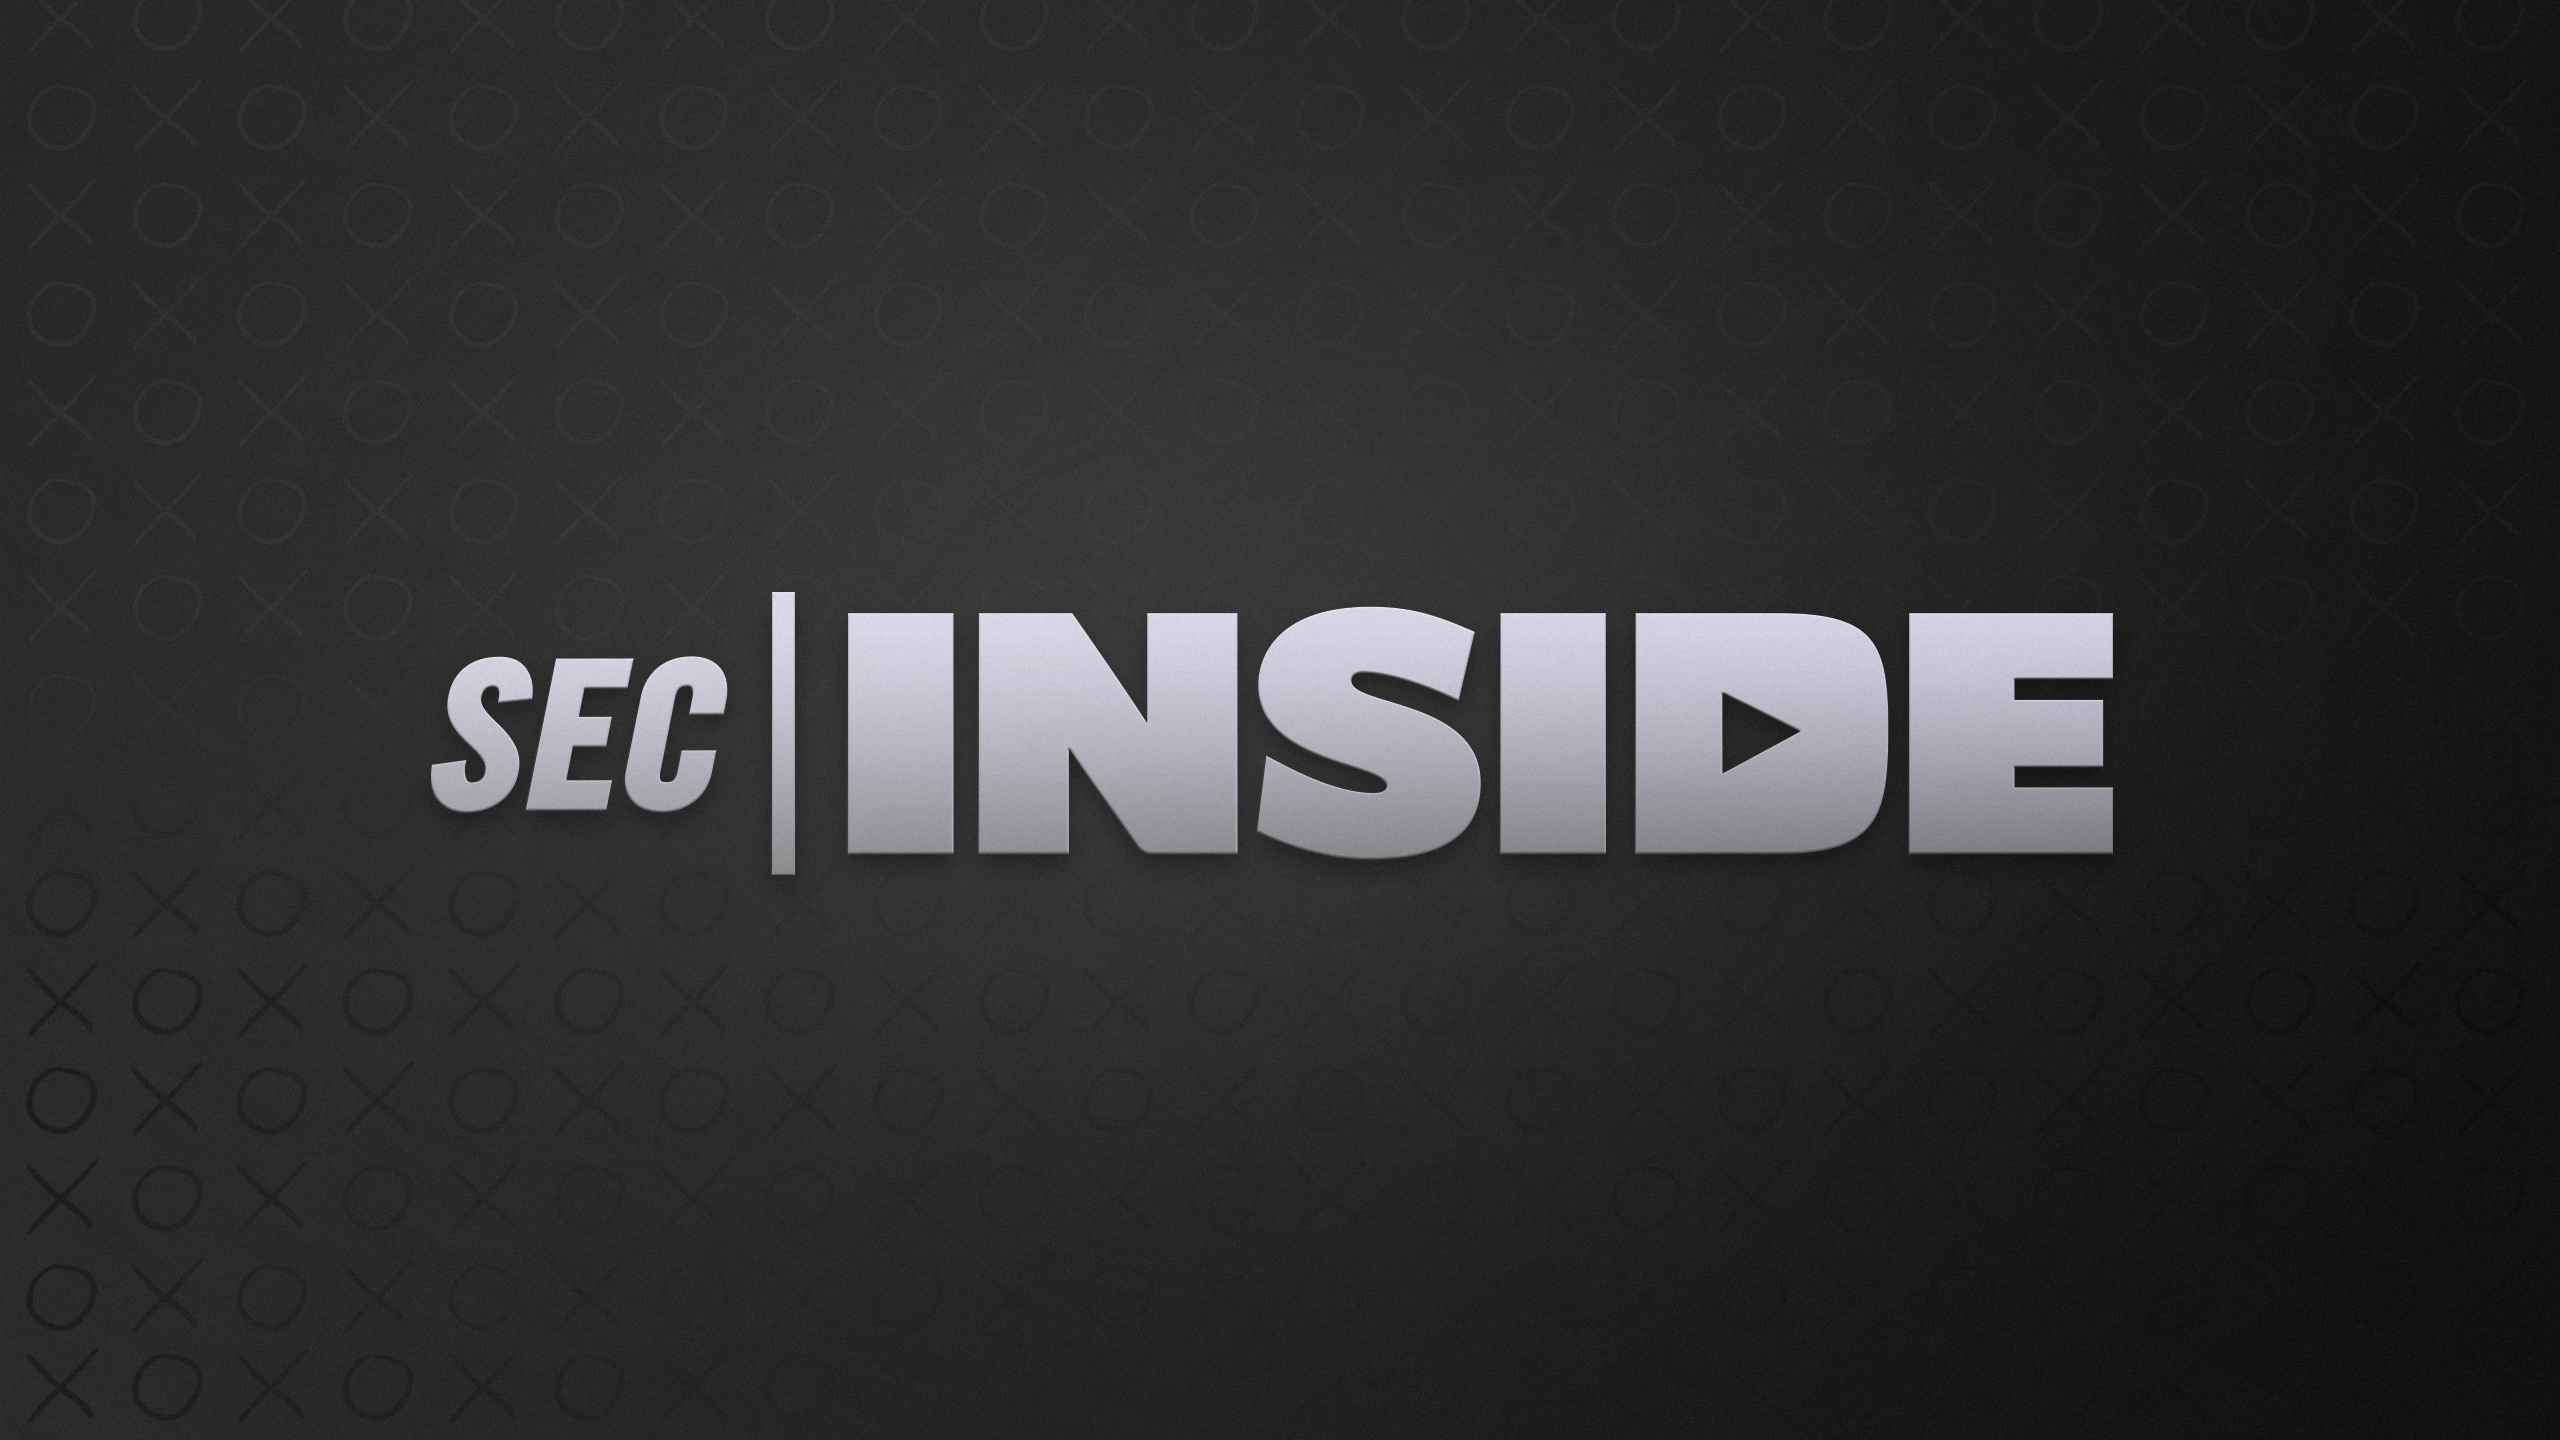 SEC Inside: SEC Championship Presented by Bass Pro Shops